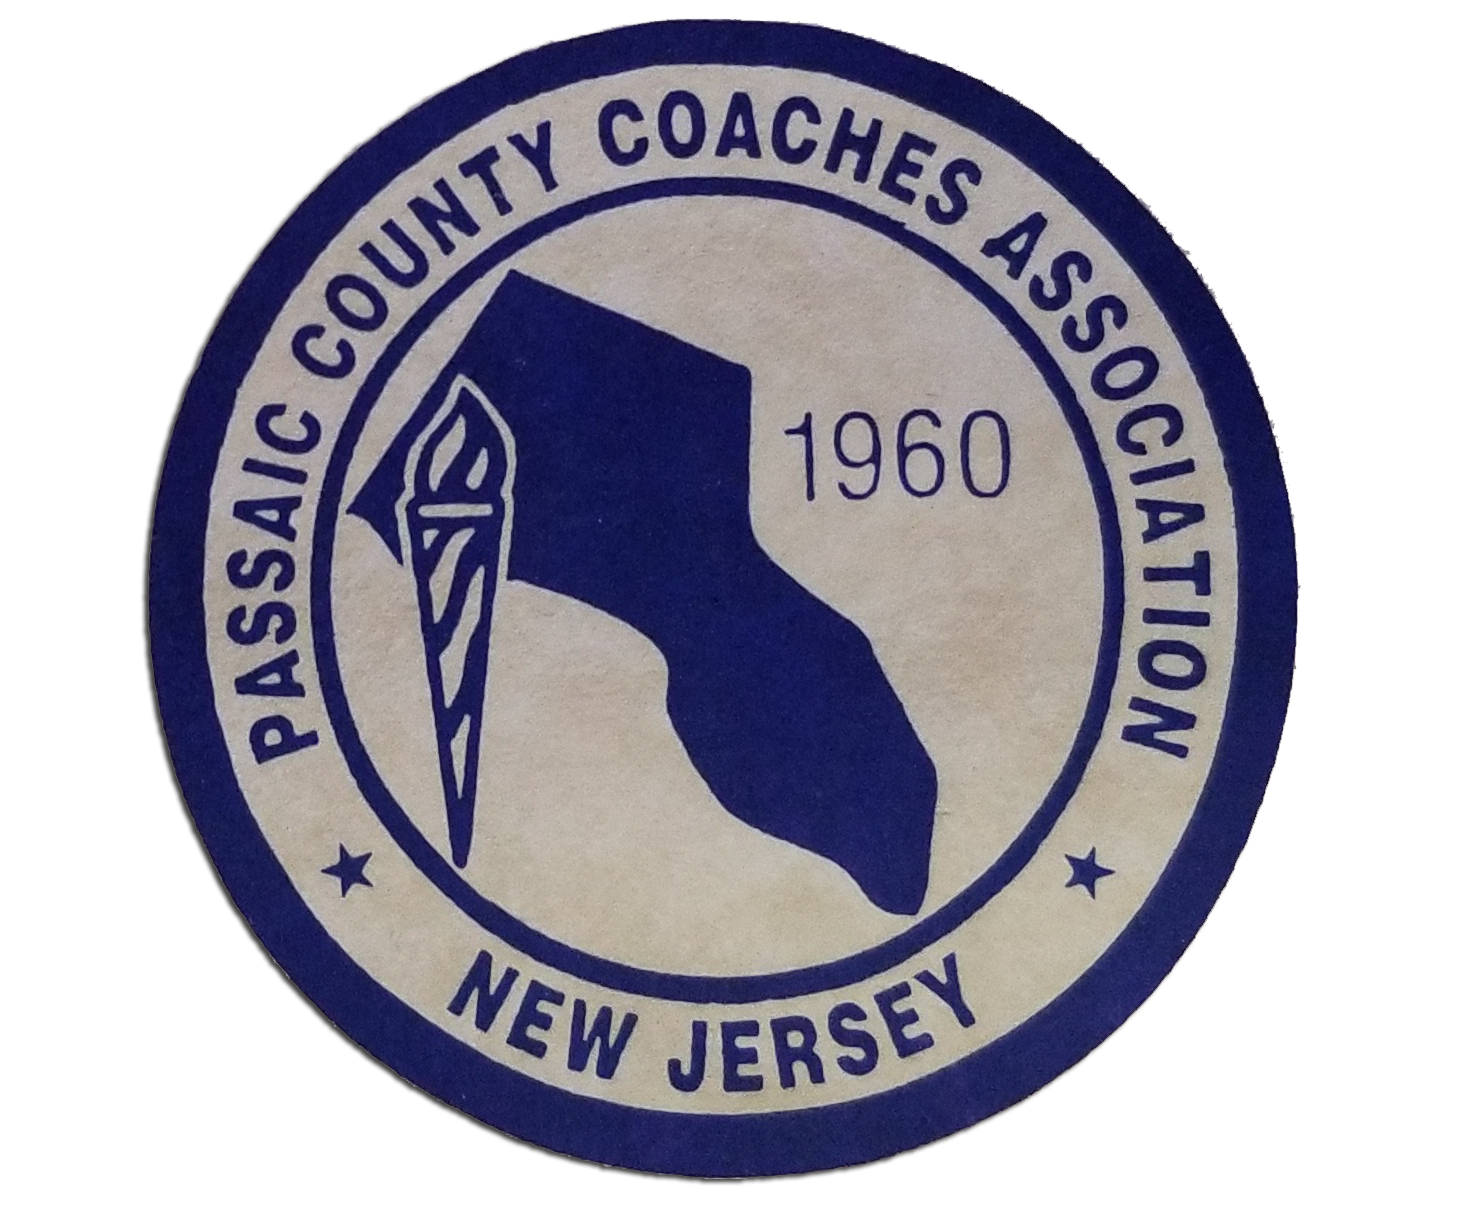 Passaic County Coaches